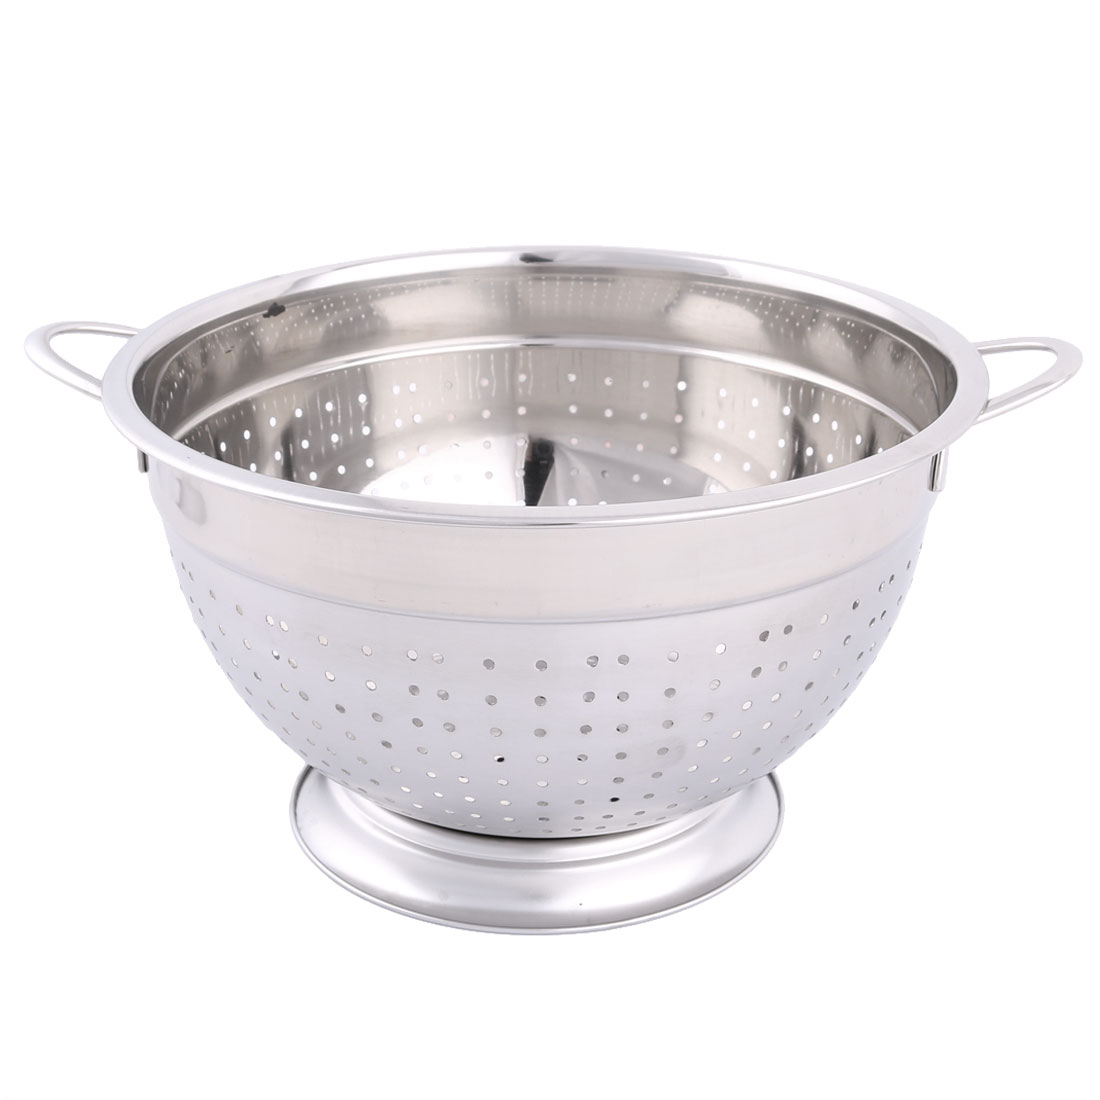 Hosehold Stainless Steel Two Lugs Round Holes Fruit Vegetable Container Basket 26cm Dia